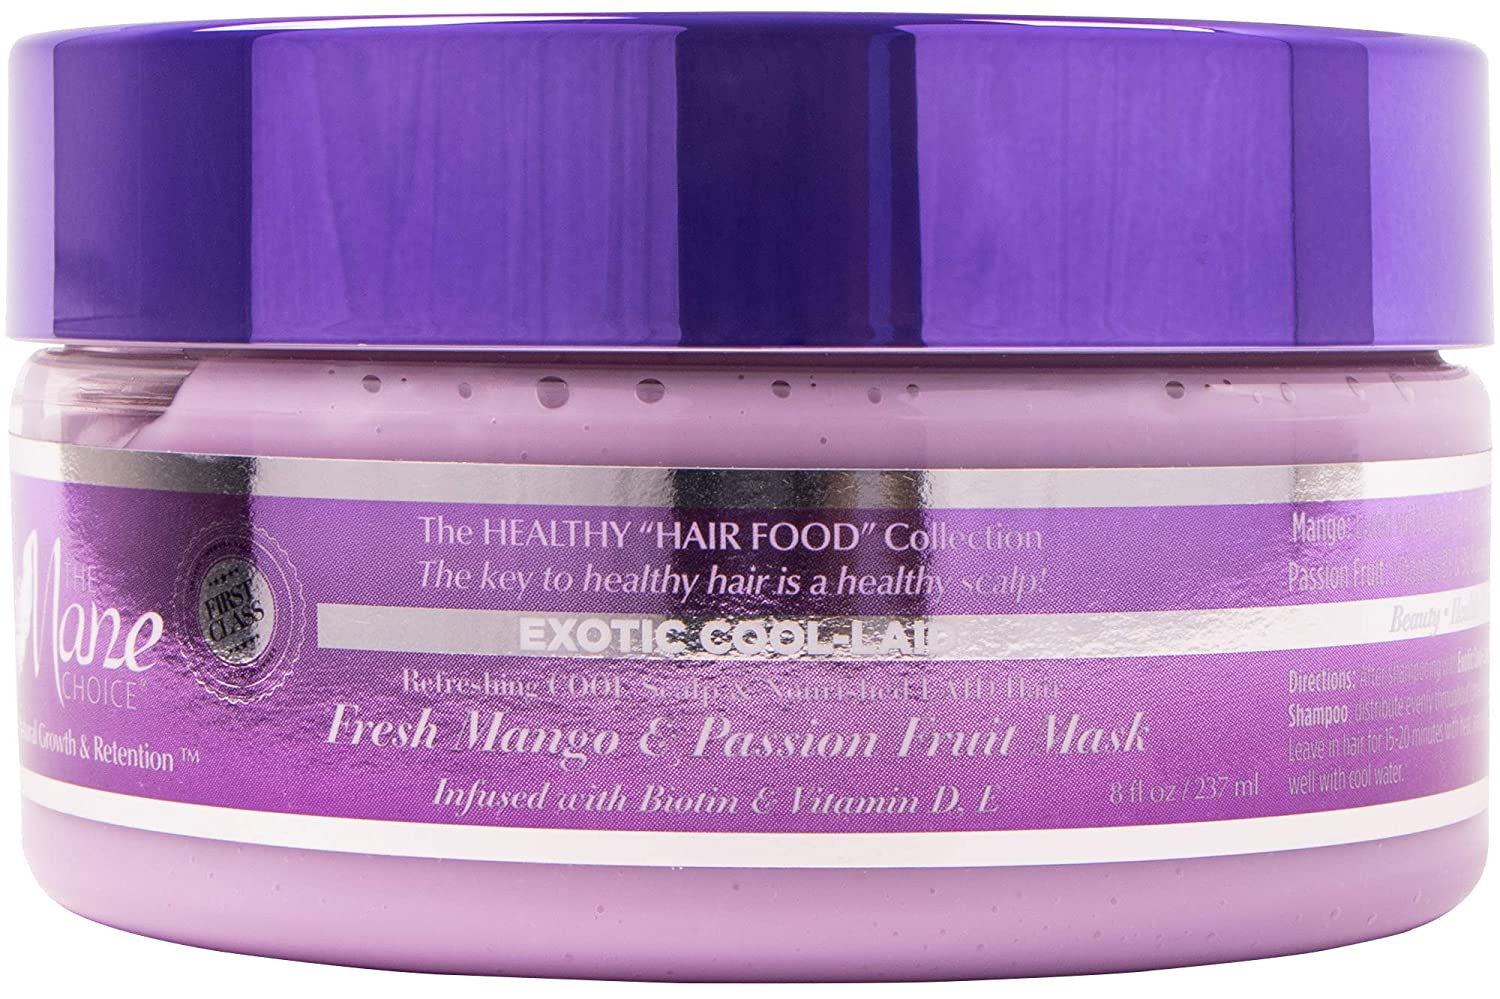 THE MANE CHOICE - Exotic Cool-Laid Fresh Mango & Passion Fruit Healthy Hair Food Conditioning Mask ( 8 Ounces / 236 Milliliters )